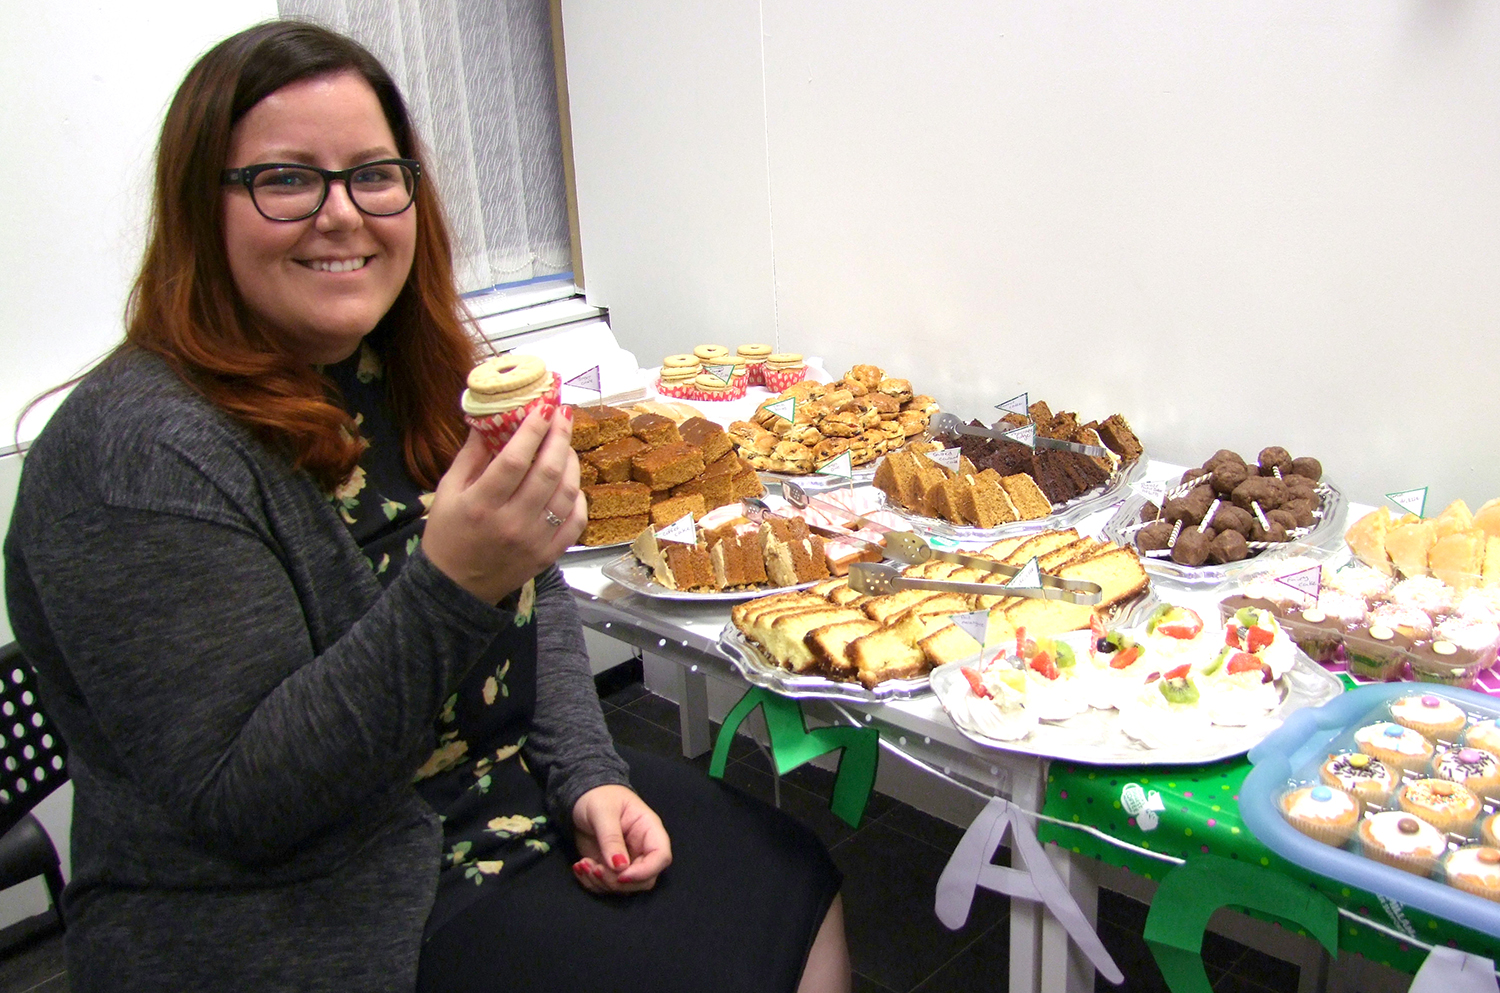 More Time For Cake as Local Charity Supports Macmillan